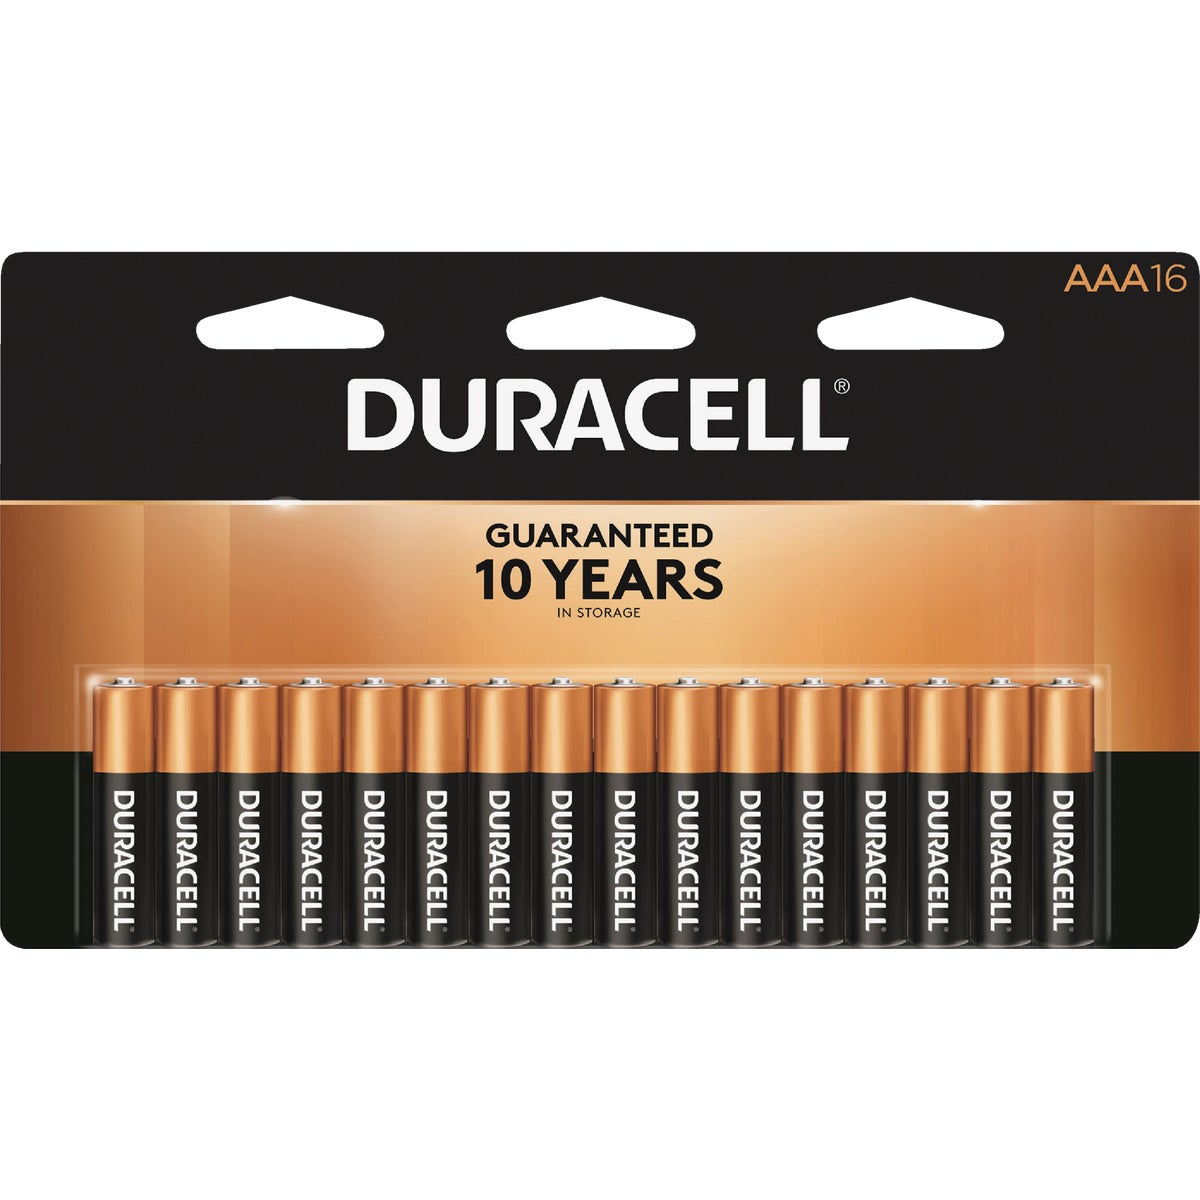 16PK AAA ALKALIN BATTERY - MN2400B16Z by P & G  Duracell